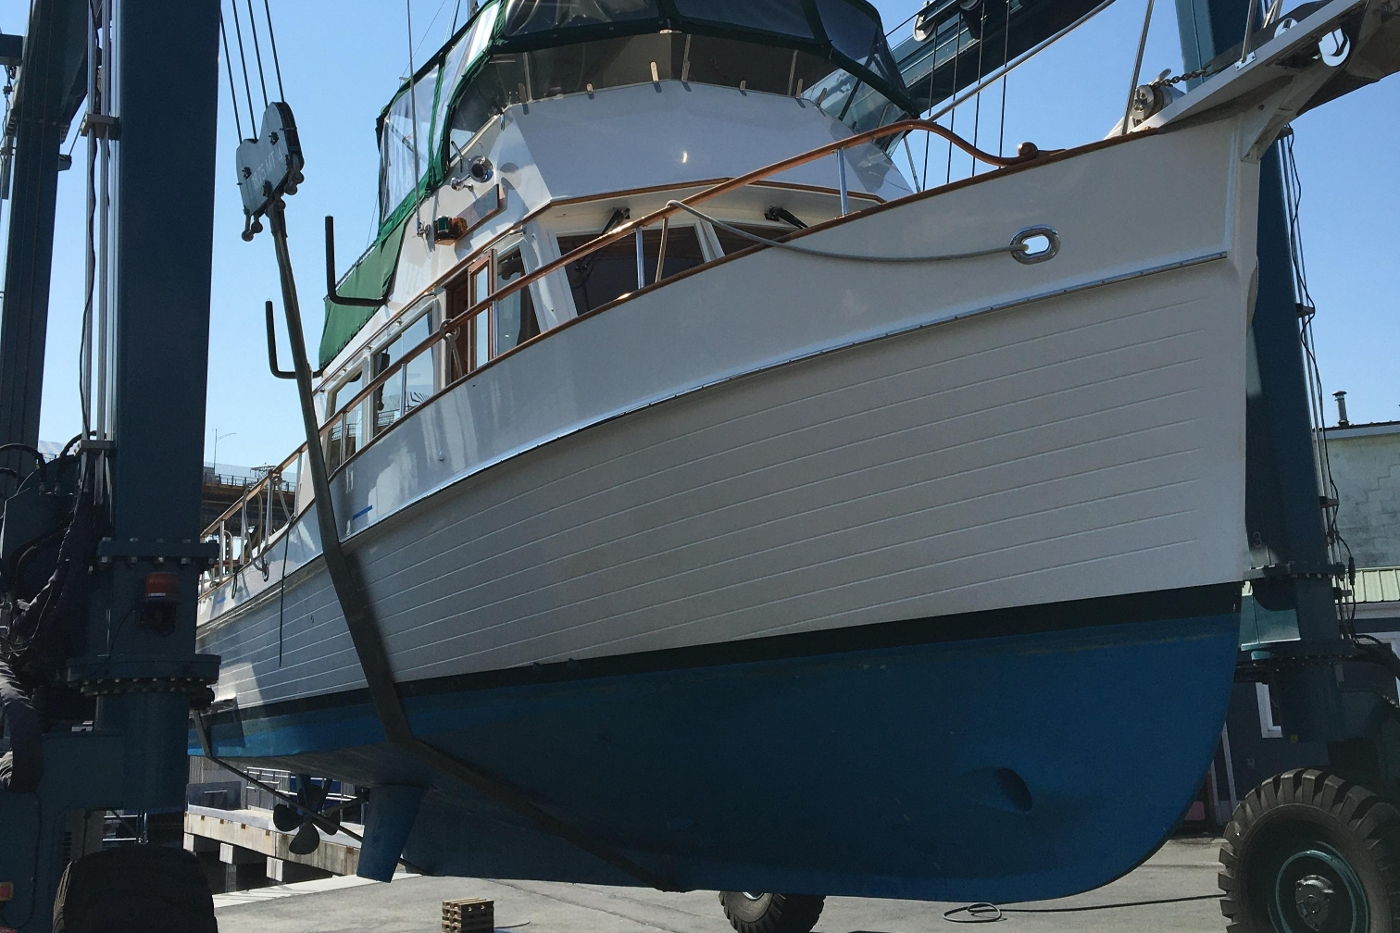 2001 Grand Banks 42 Classic, Haul Out Starboard